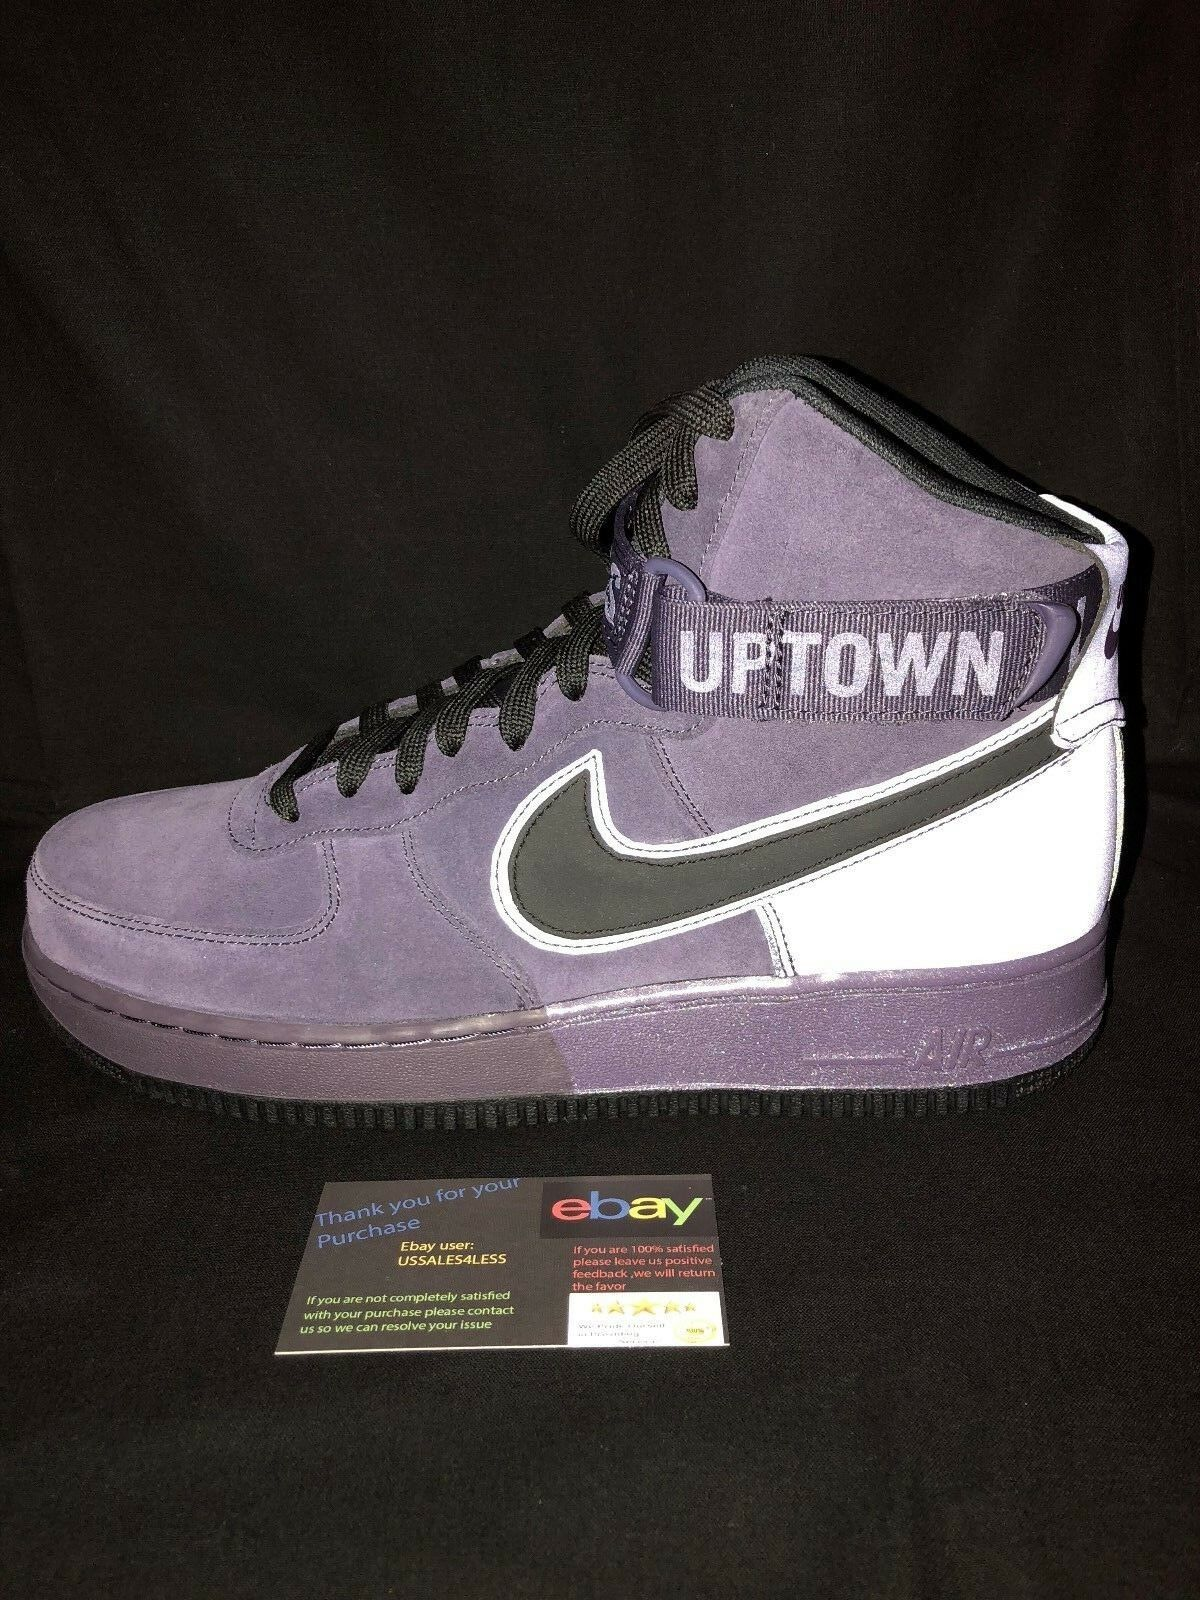 Nike Air Force 1 High '07 QS Men's Shoes Dark Raisin/Night Purple 573967-500 New shoes for men and women, limited time discount